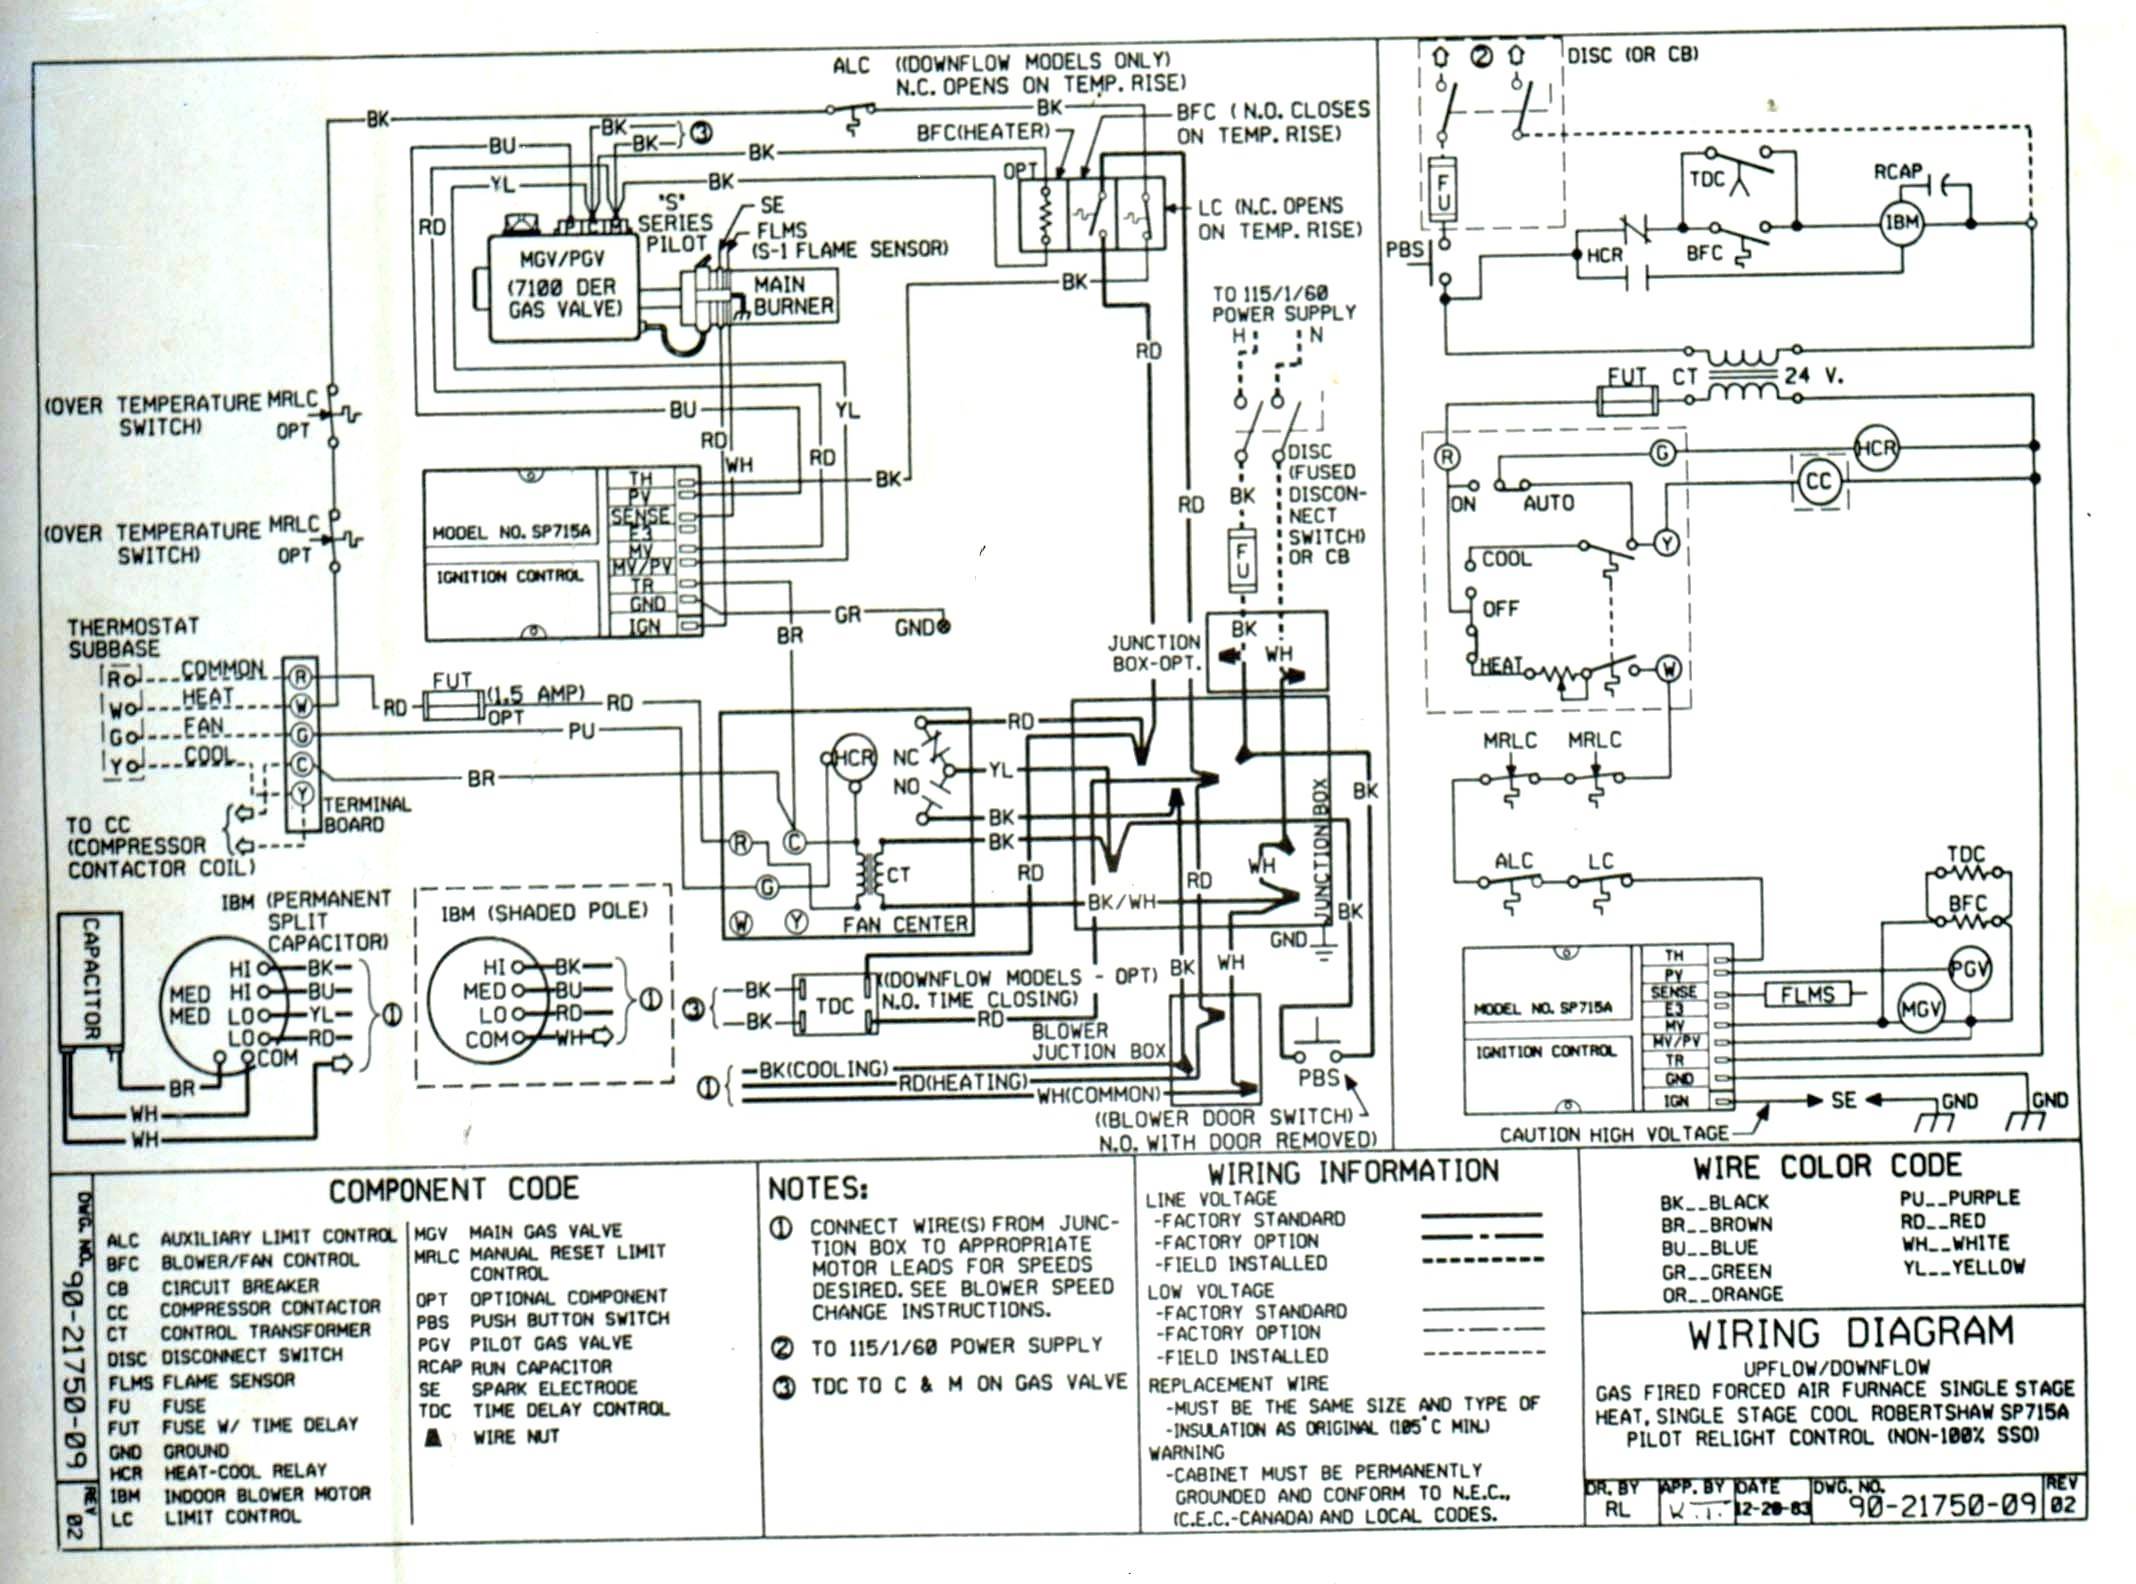 Gas Pump Diagram Goodman Heat Pump Package Unit Wiring Diagram Sample Of Gas Pump Diagram